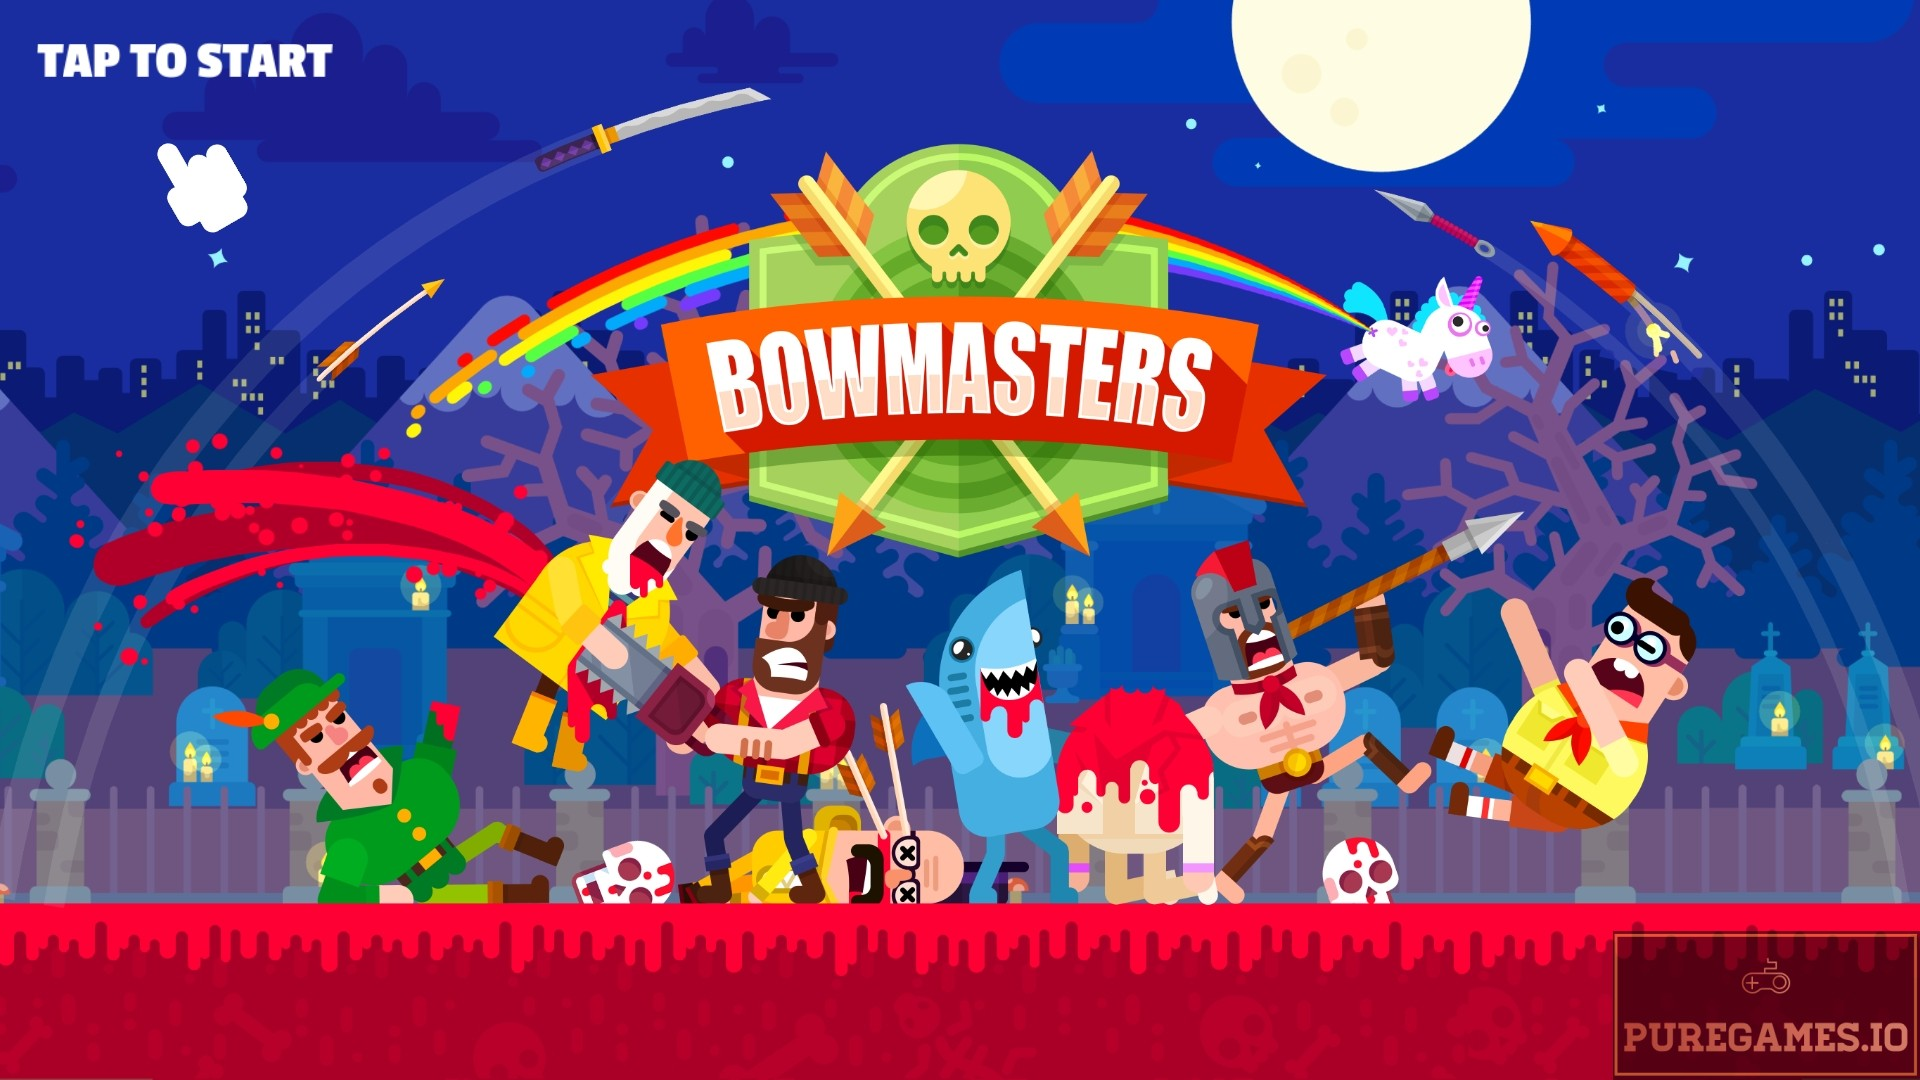 Download Bowmasters APK - For Android/iOS 11